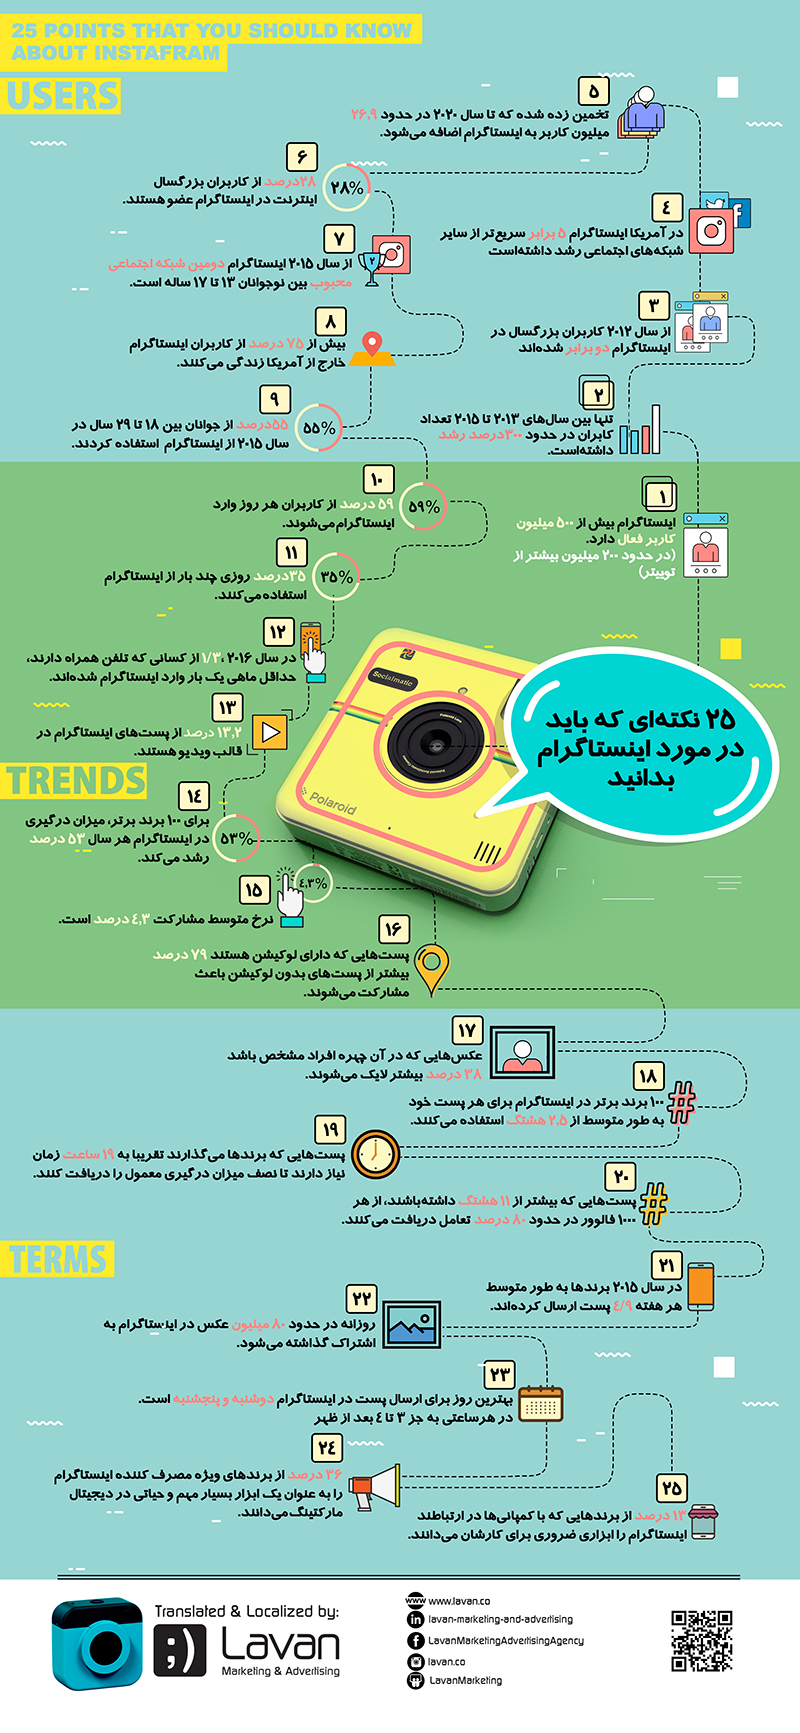 ۲۵ points about instagram